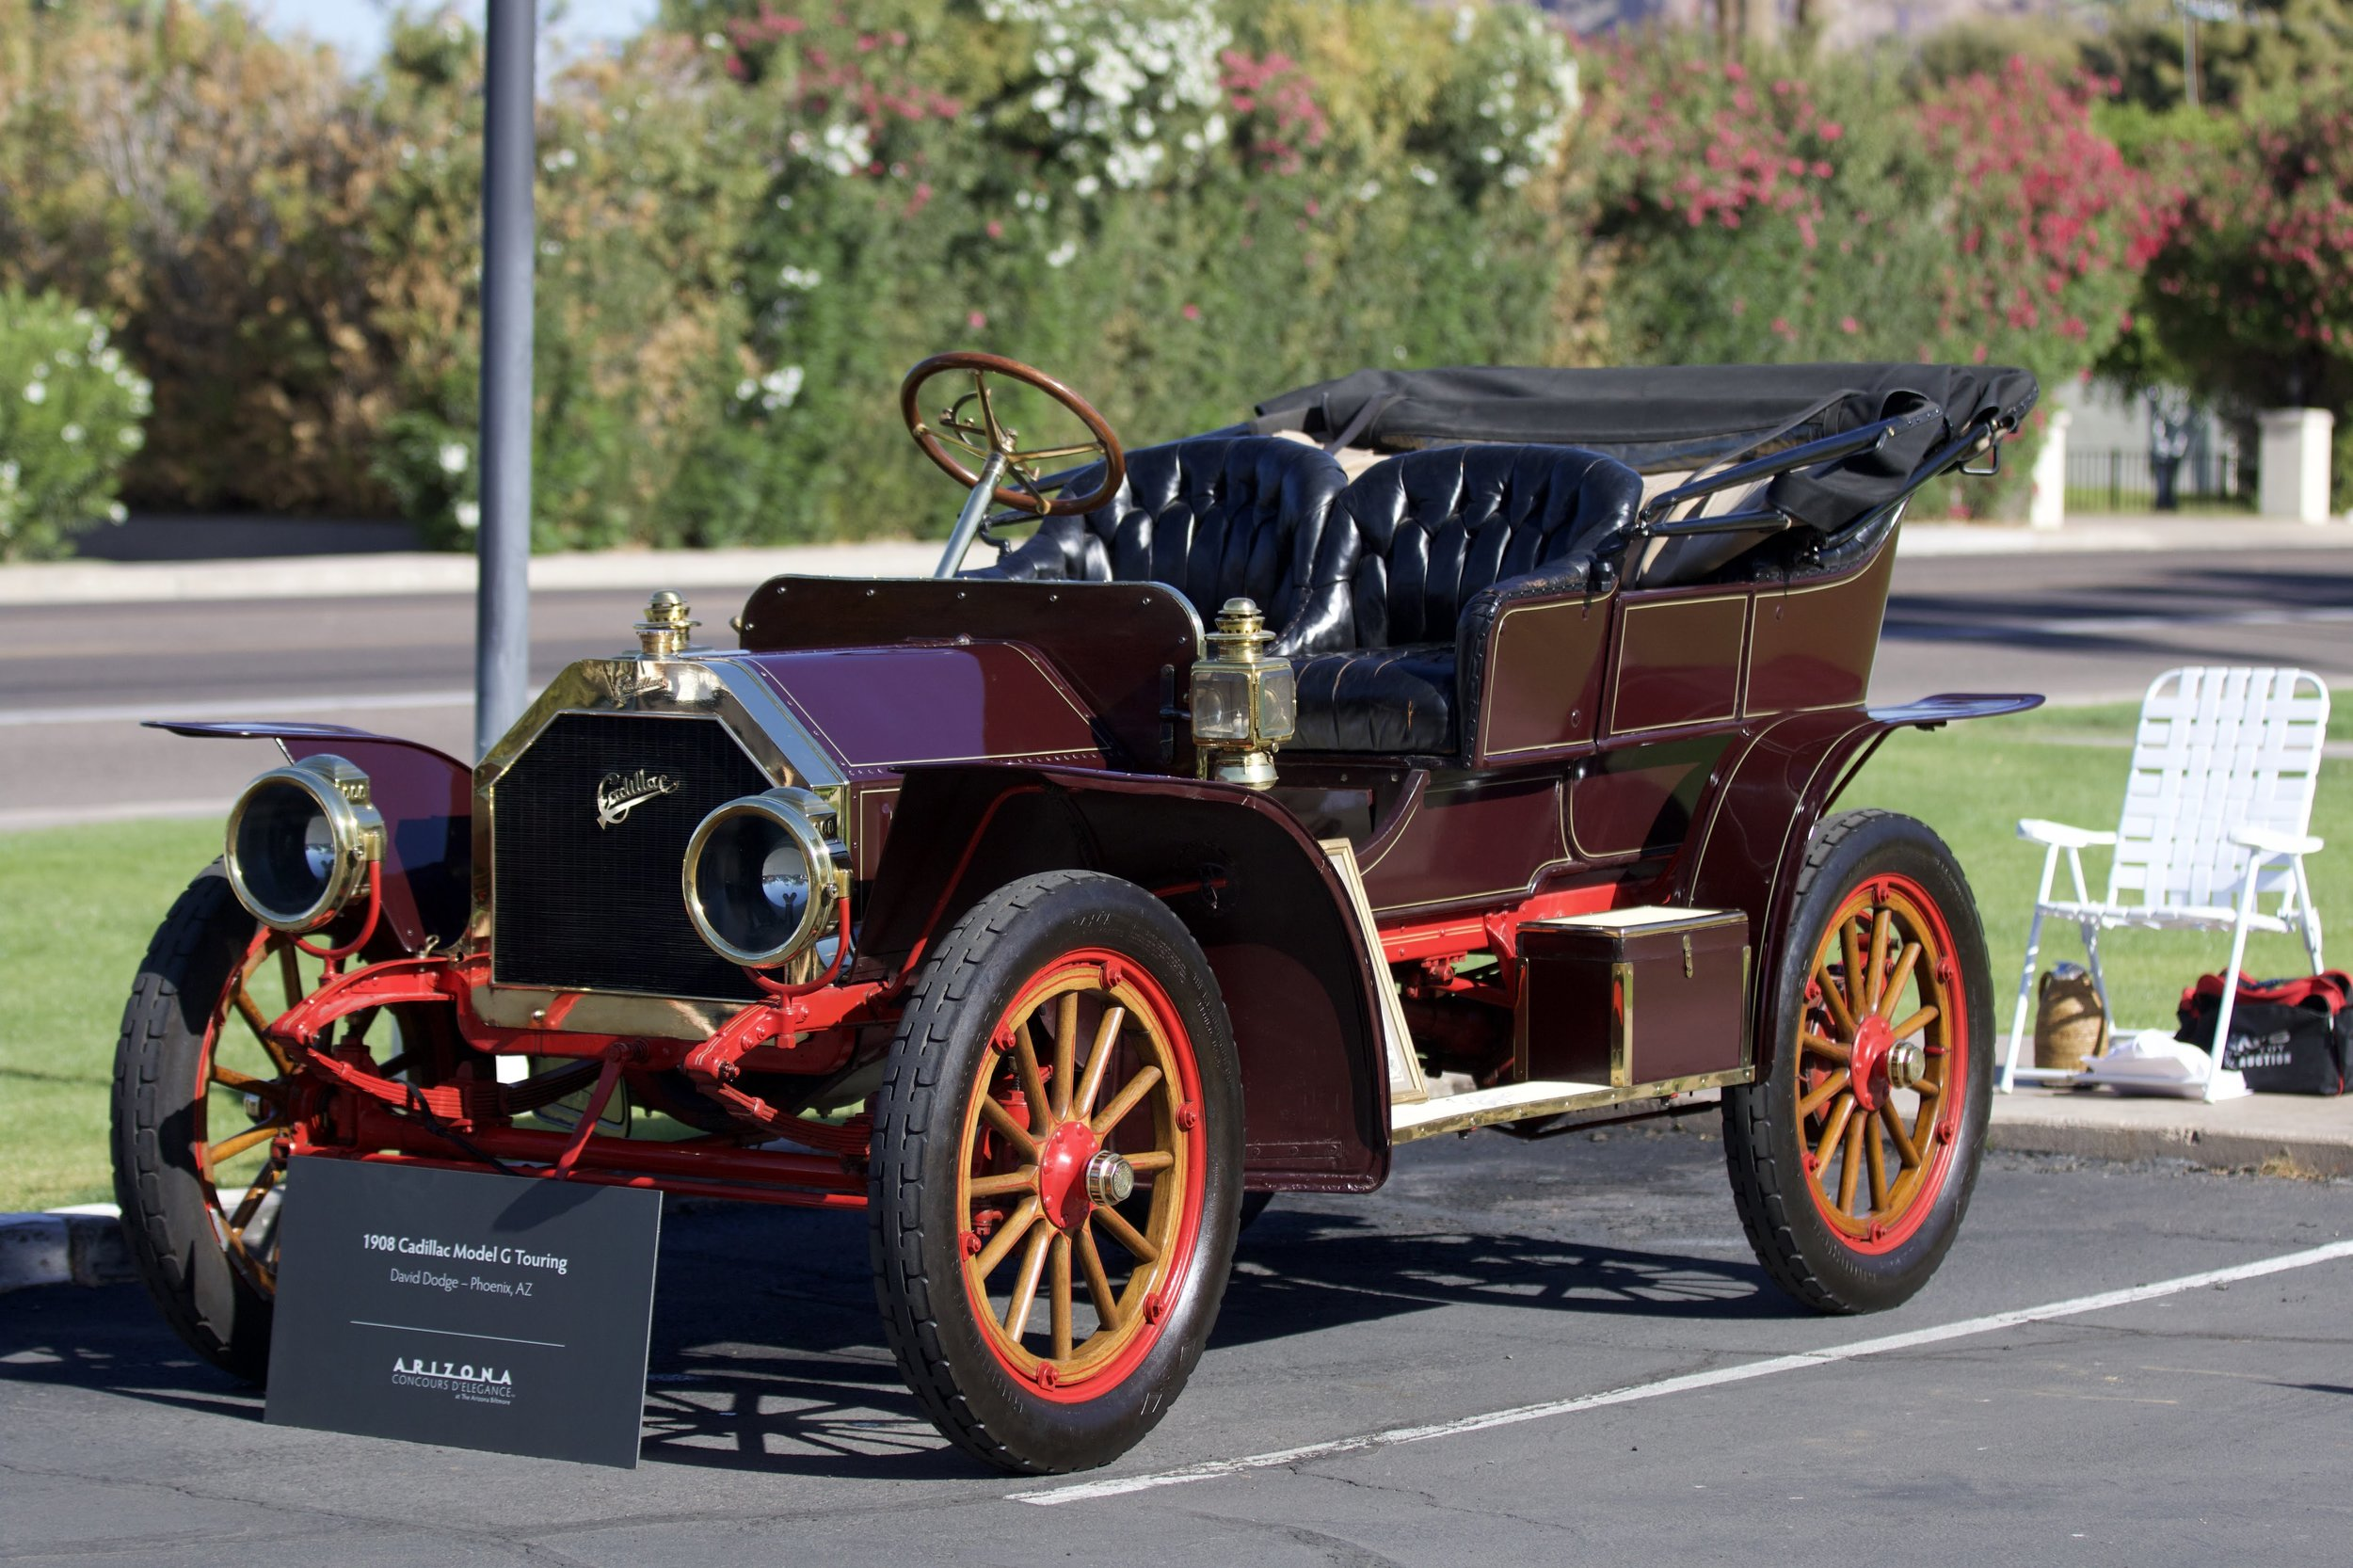 This 1908 Cadillac Touring car owned by David Dodge of Arcadia has been in the Dodge family for 110 years now.